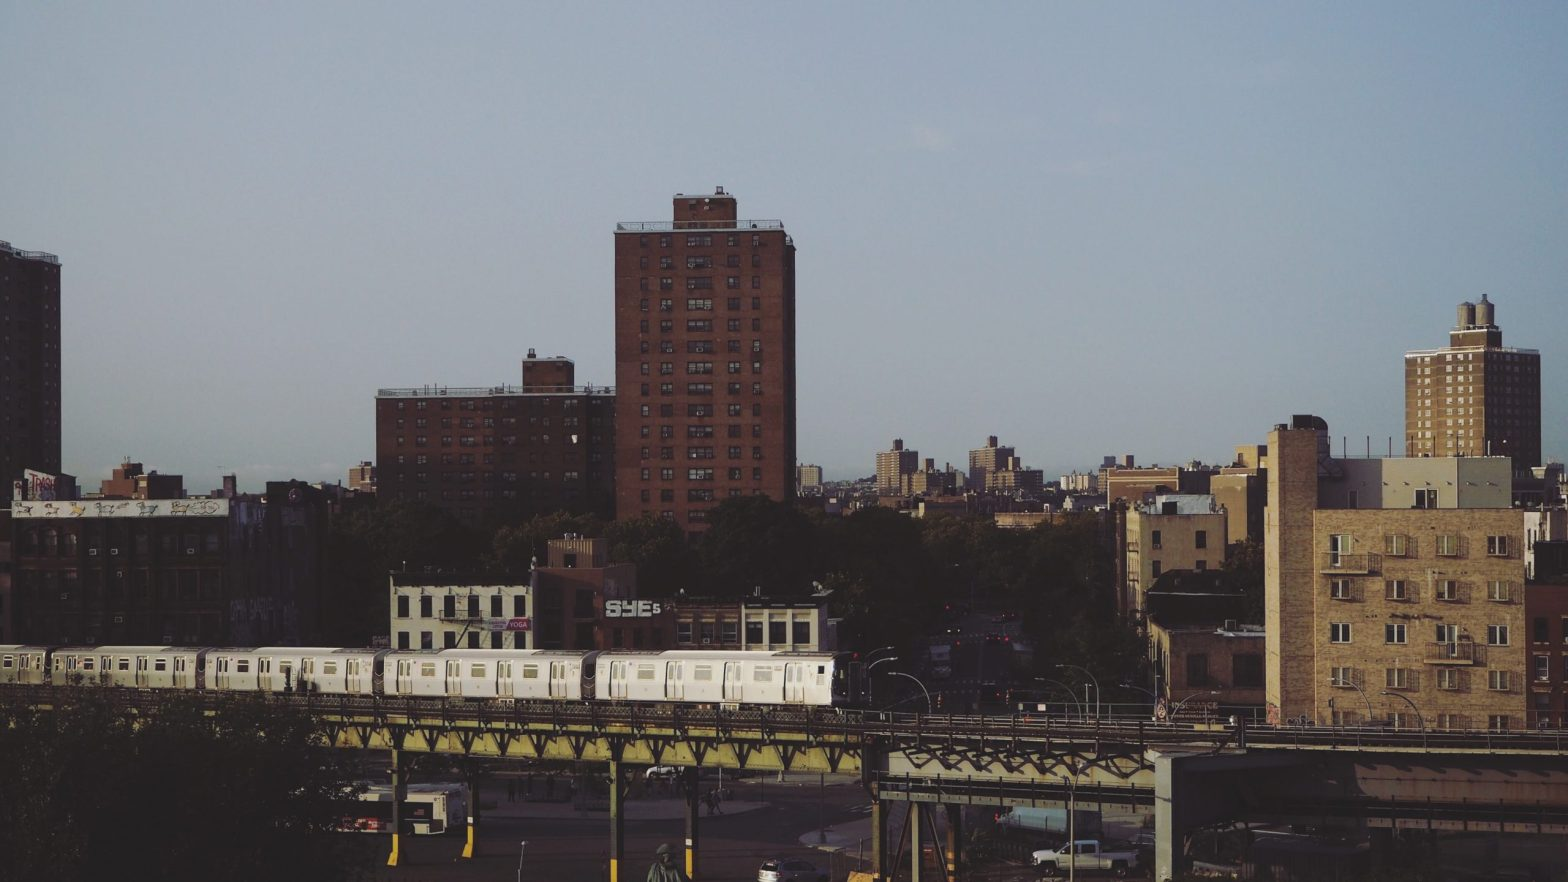 Williamsburg Brooklyn, wideshot, find rooms for rent